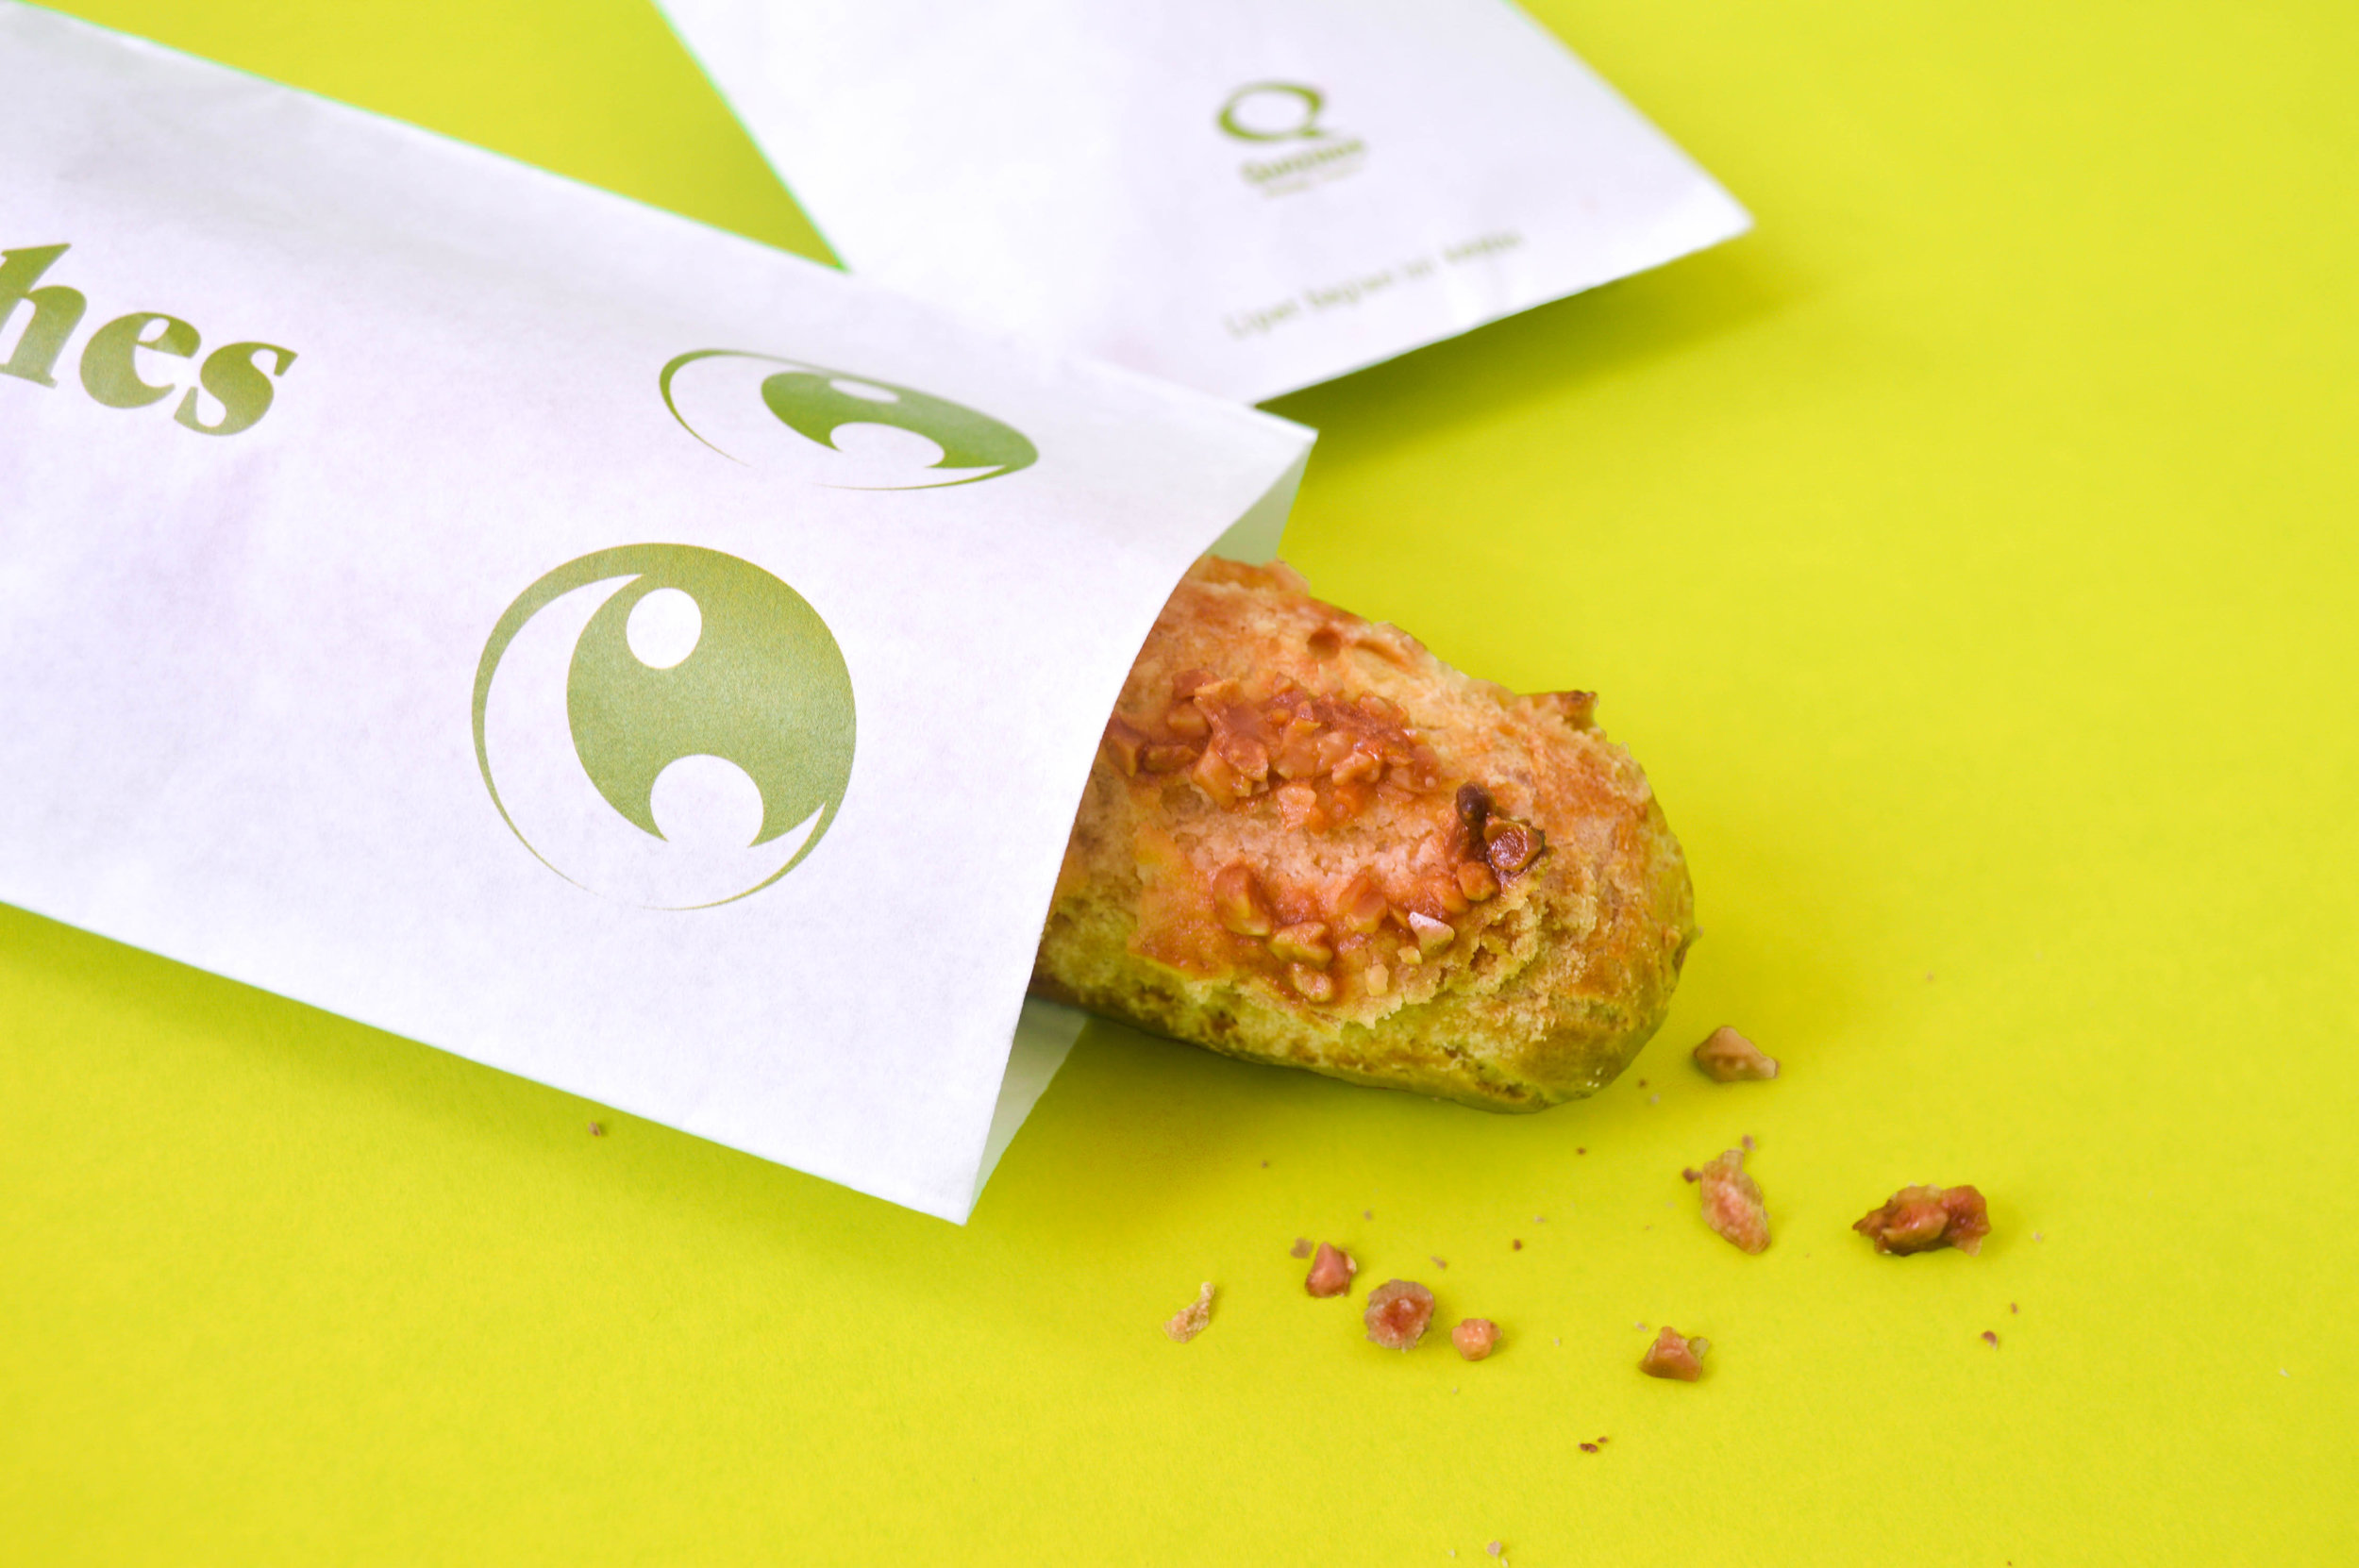 Indonesian Franchise Create Playful Pastry Packaging Design / World Brand & Packaging Design Society